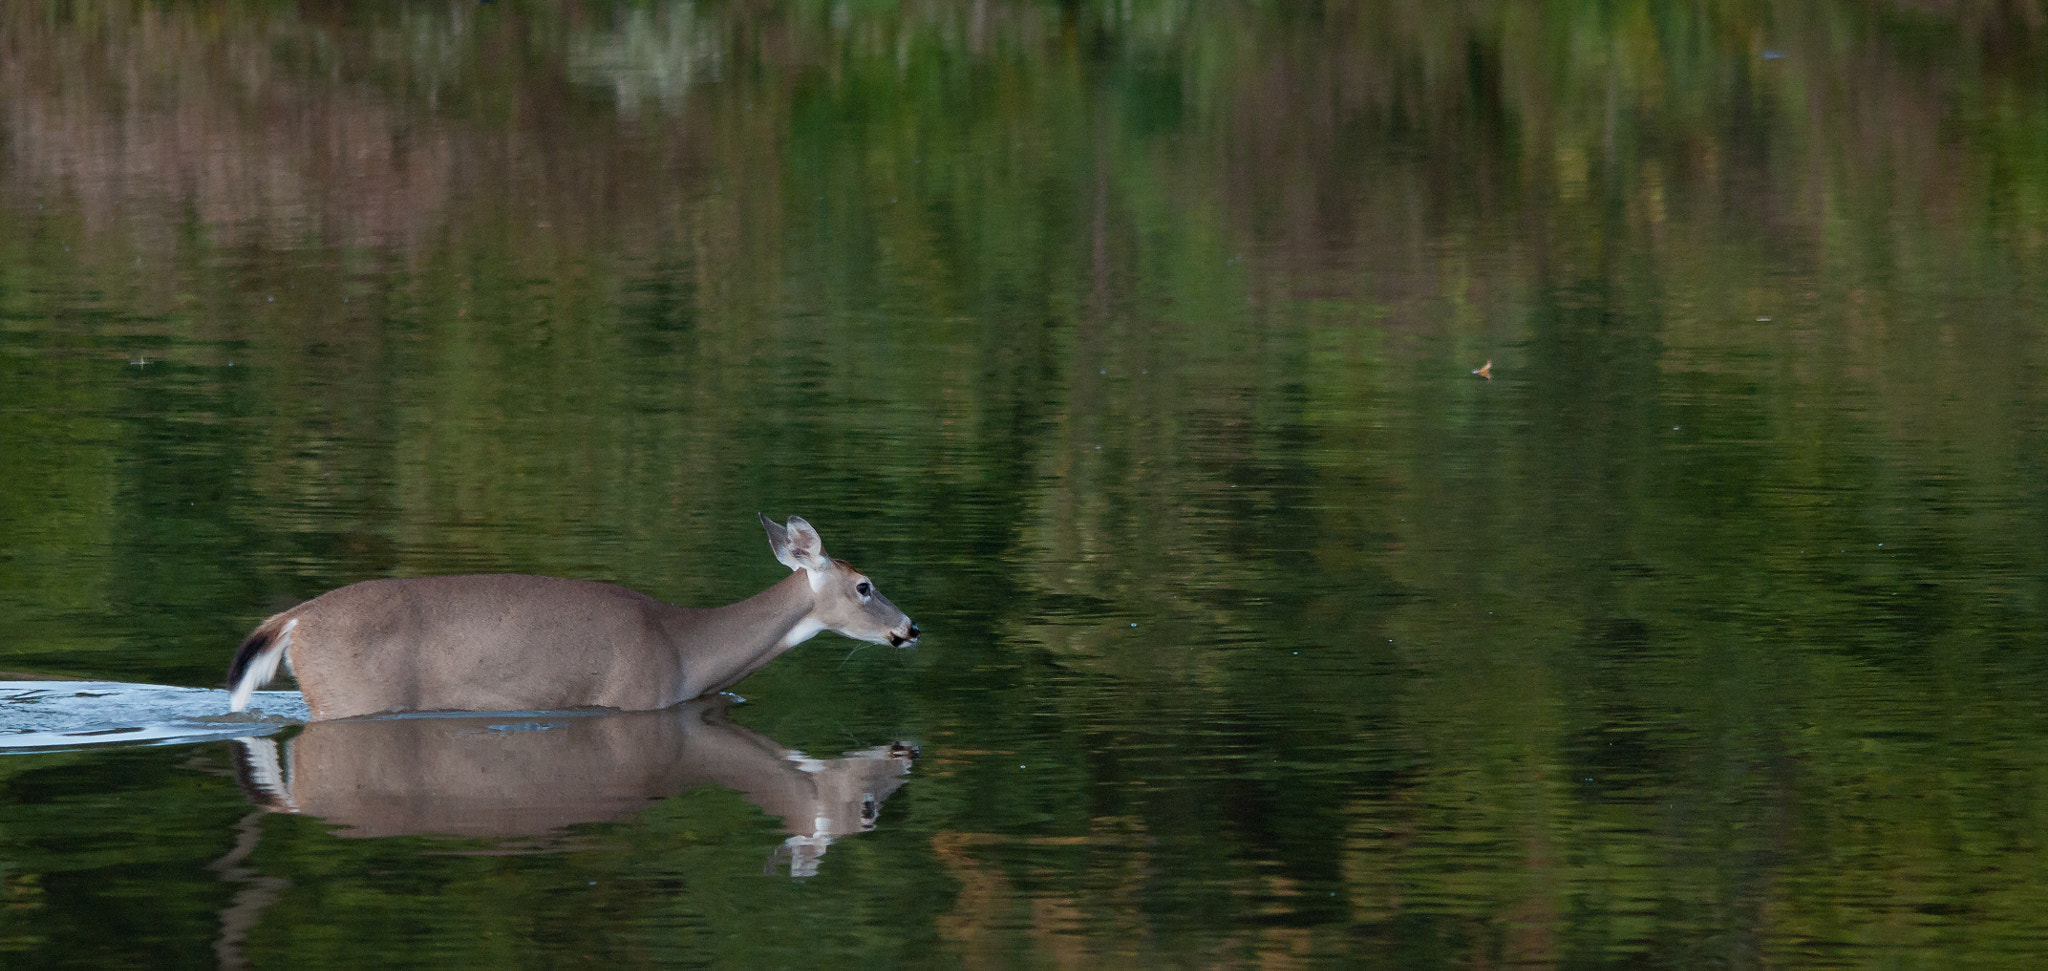 Photograph Whitetail in Water by Nick Chill on 500px